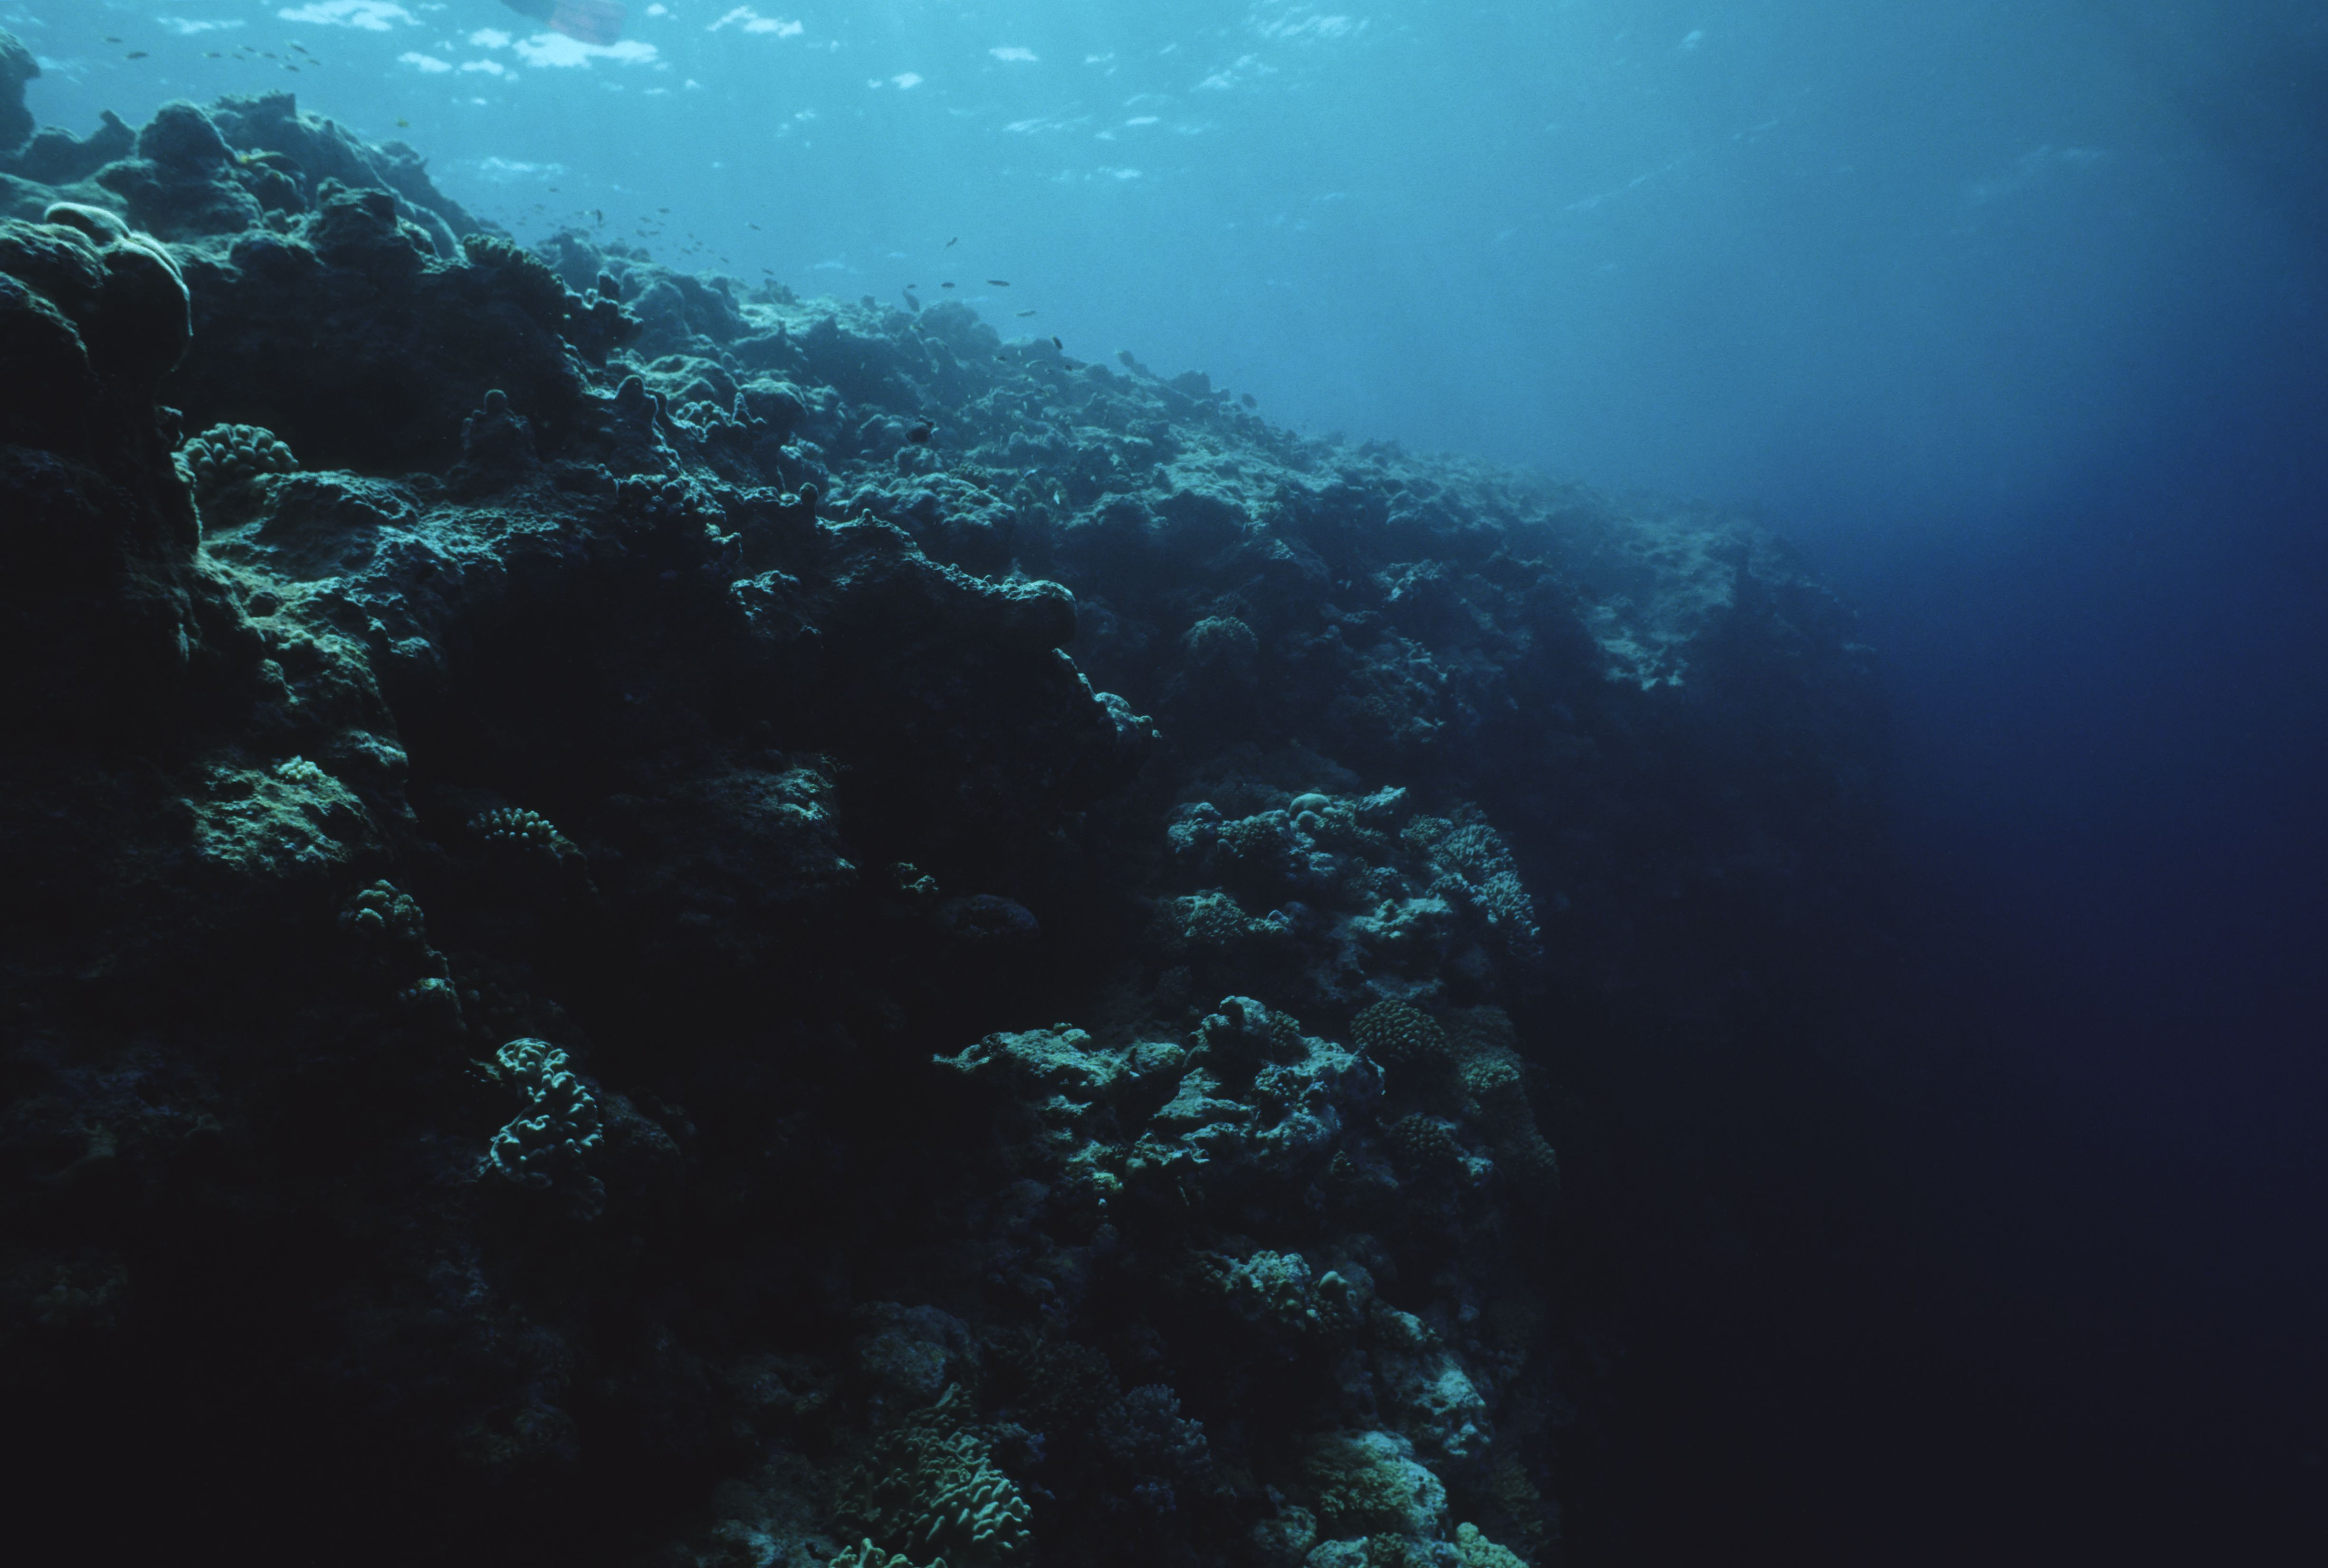 Our Oceans Are Full of Vast Dead Zones Without Oxygen